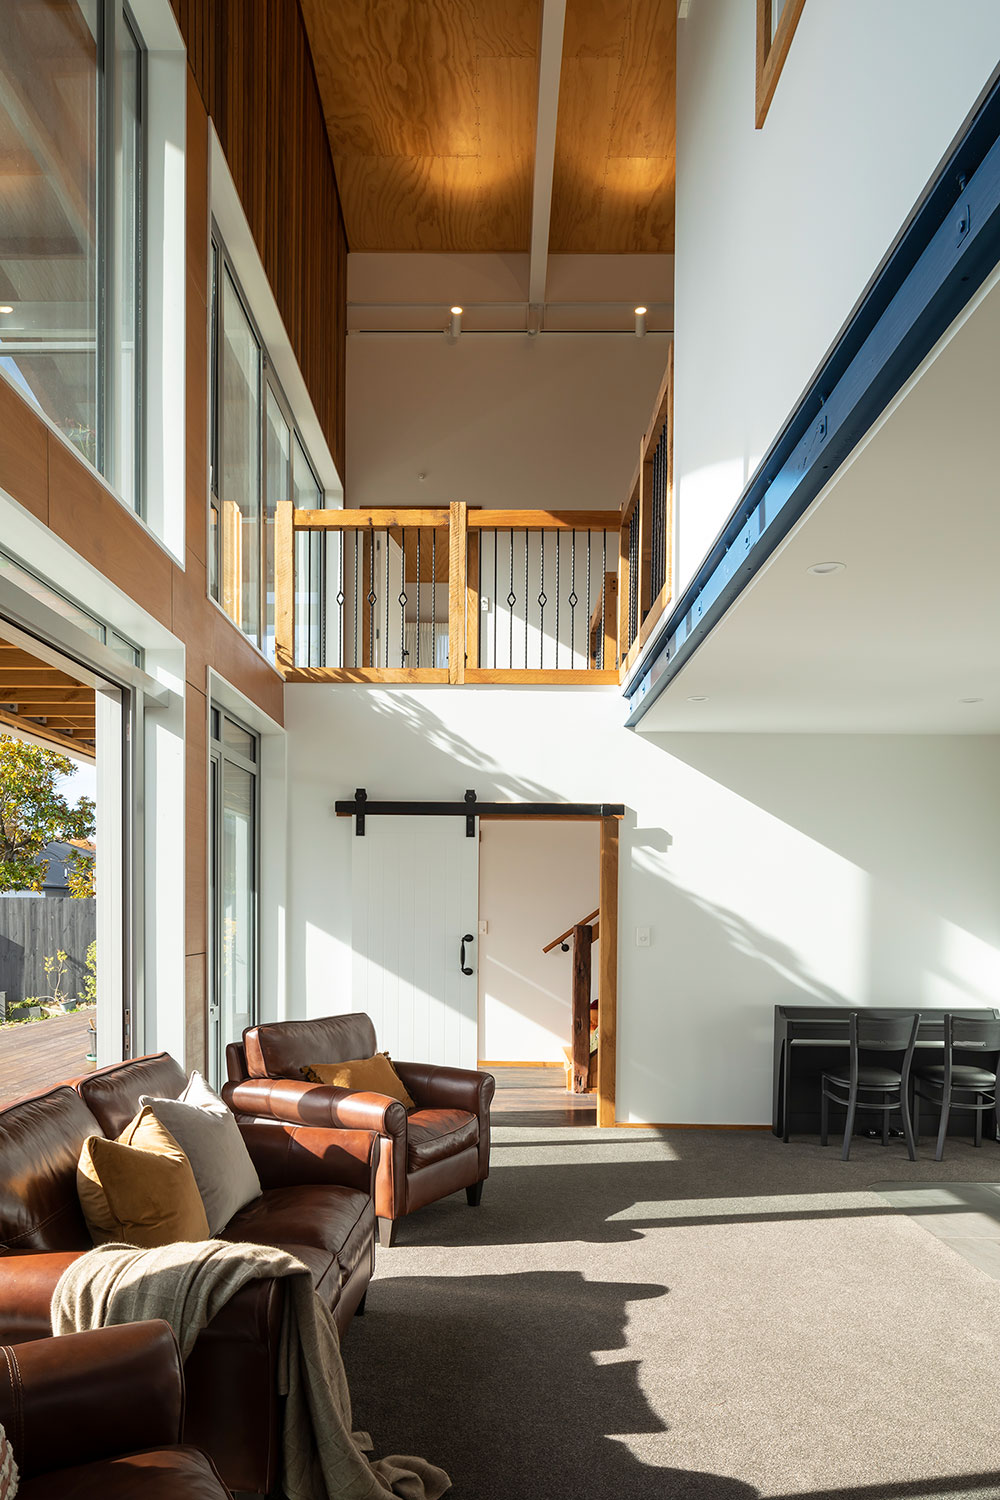 https://www.benchmarkhomes.co.nz/wp-content/uploads/2021/07/Projects-Ross-41000-x-1500-High-Res.jpg